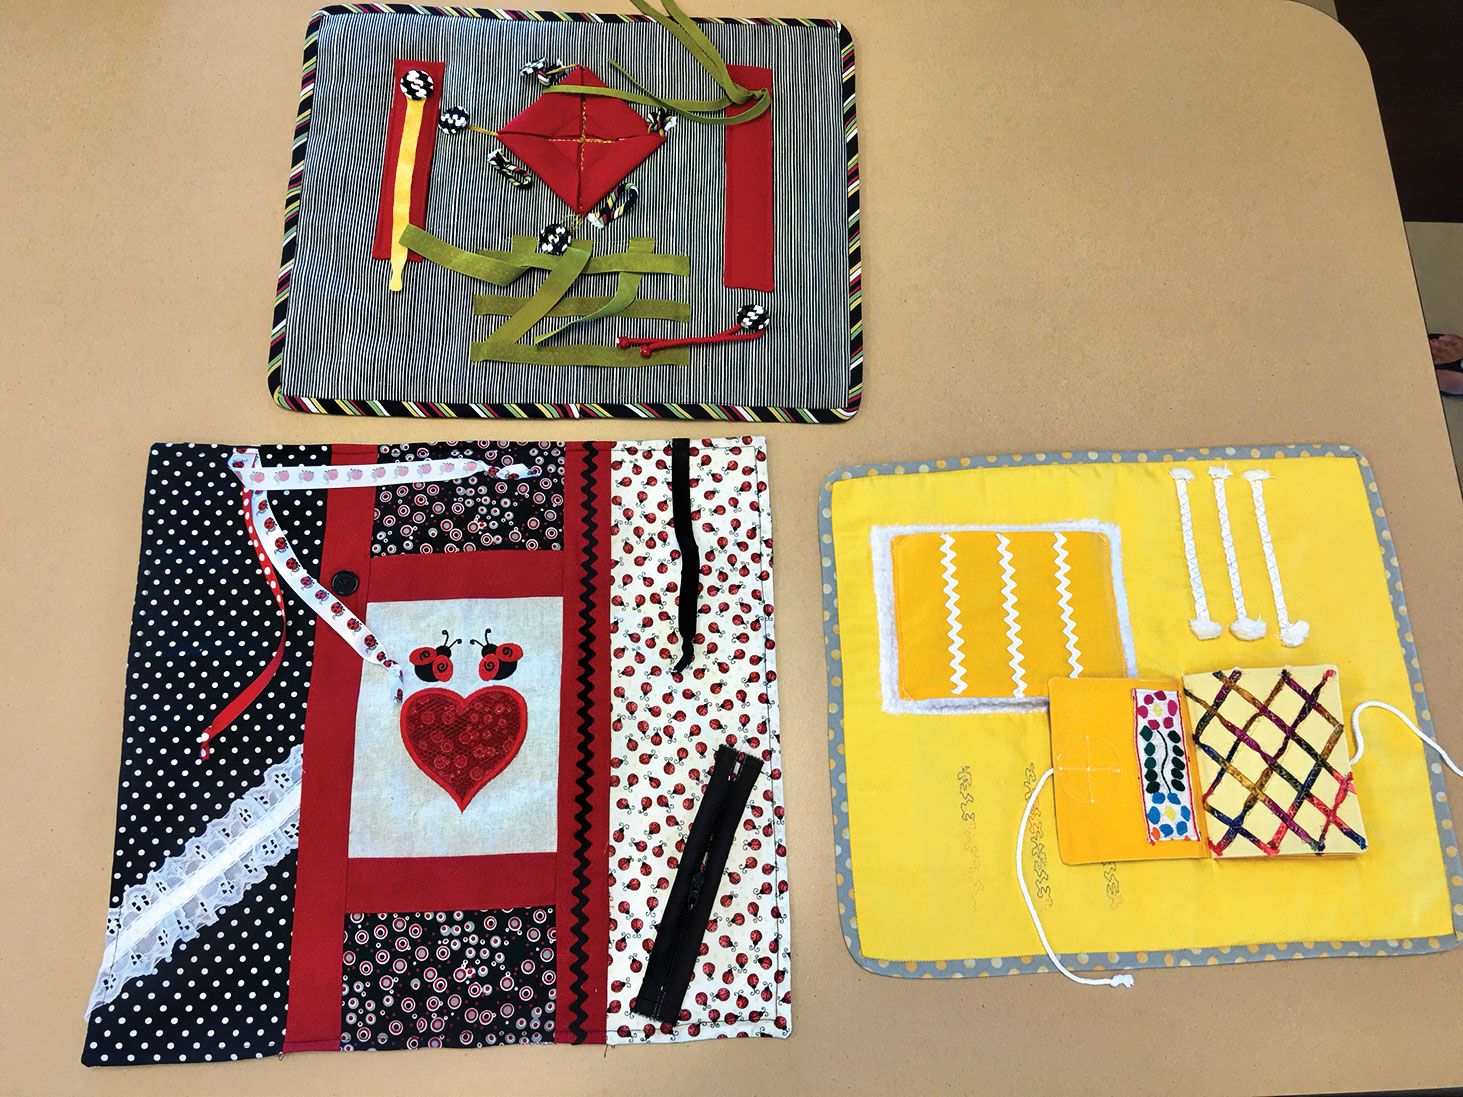 A sample of the Fidget Quilt made by Kerstin Seifert and Carol Smith.